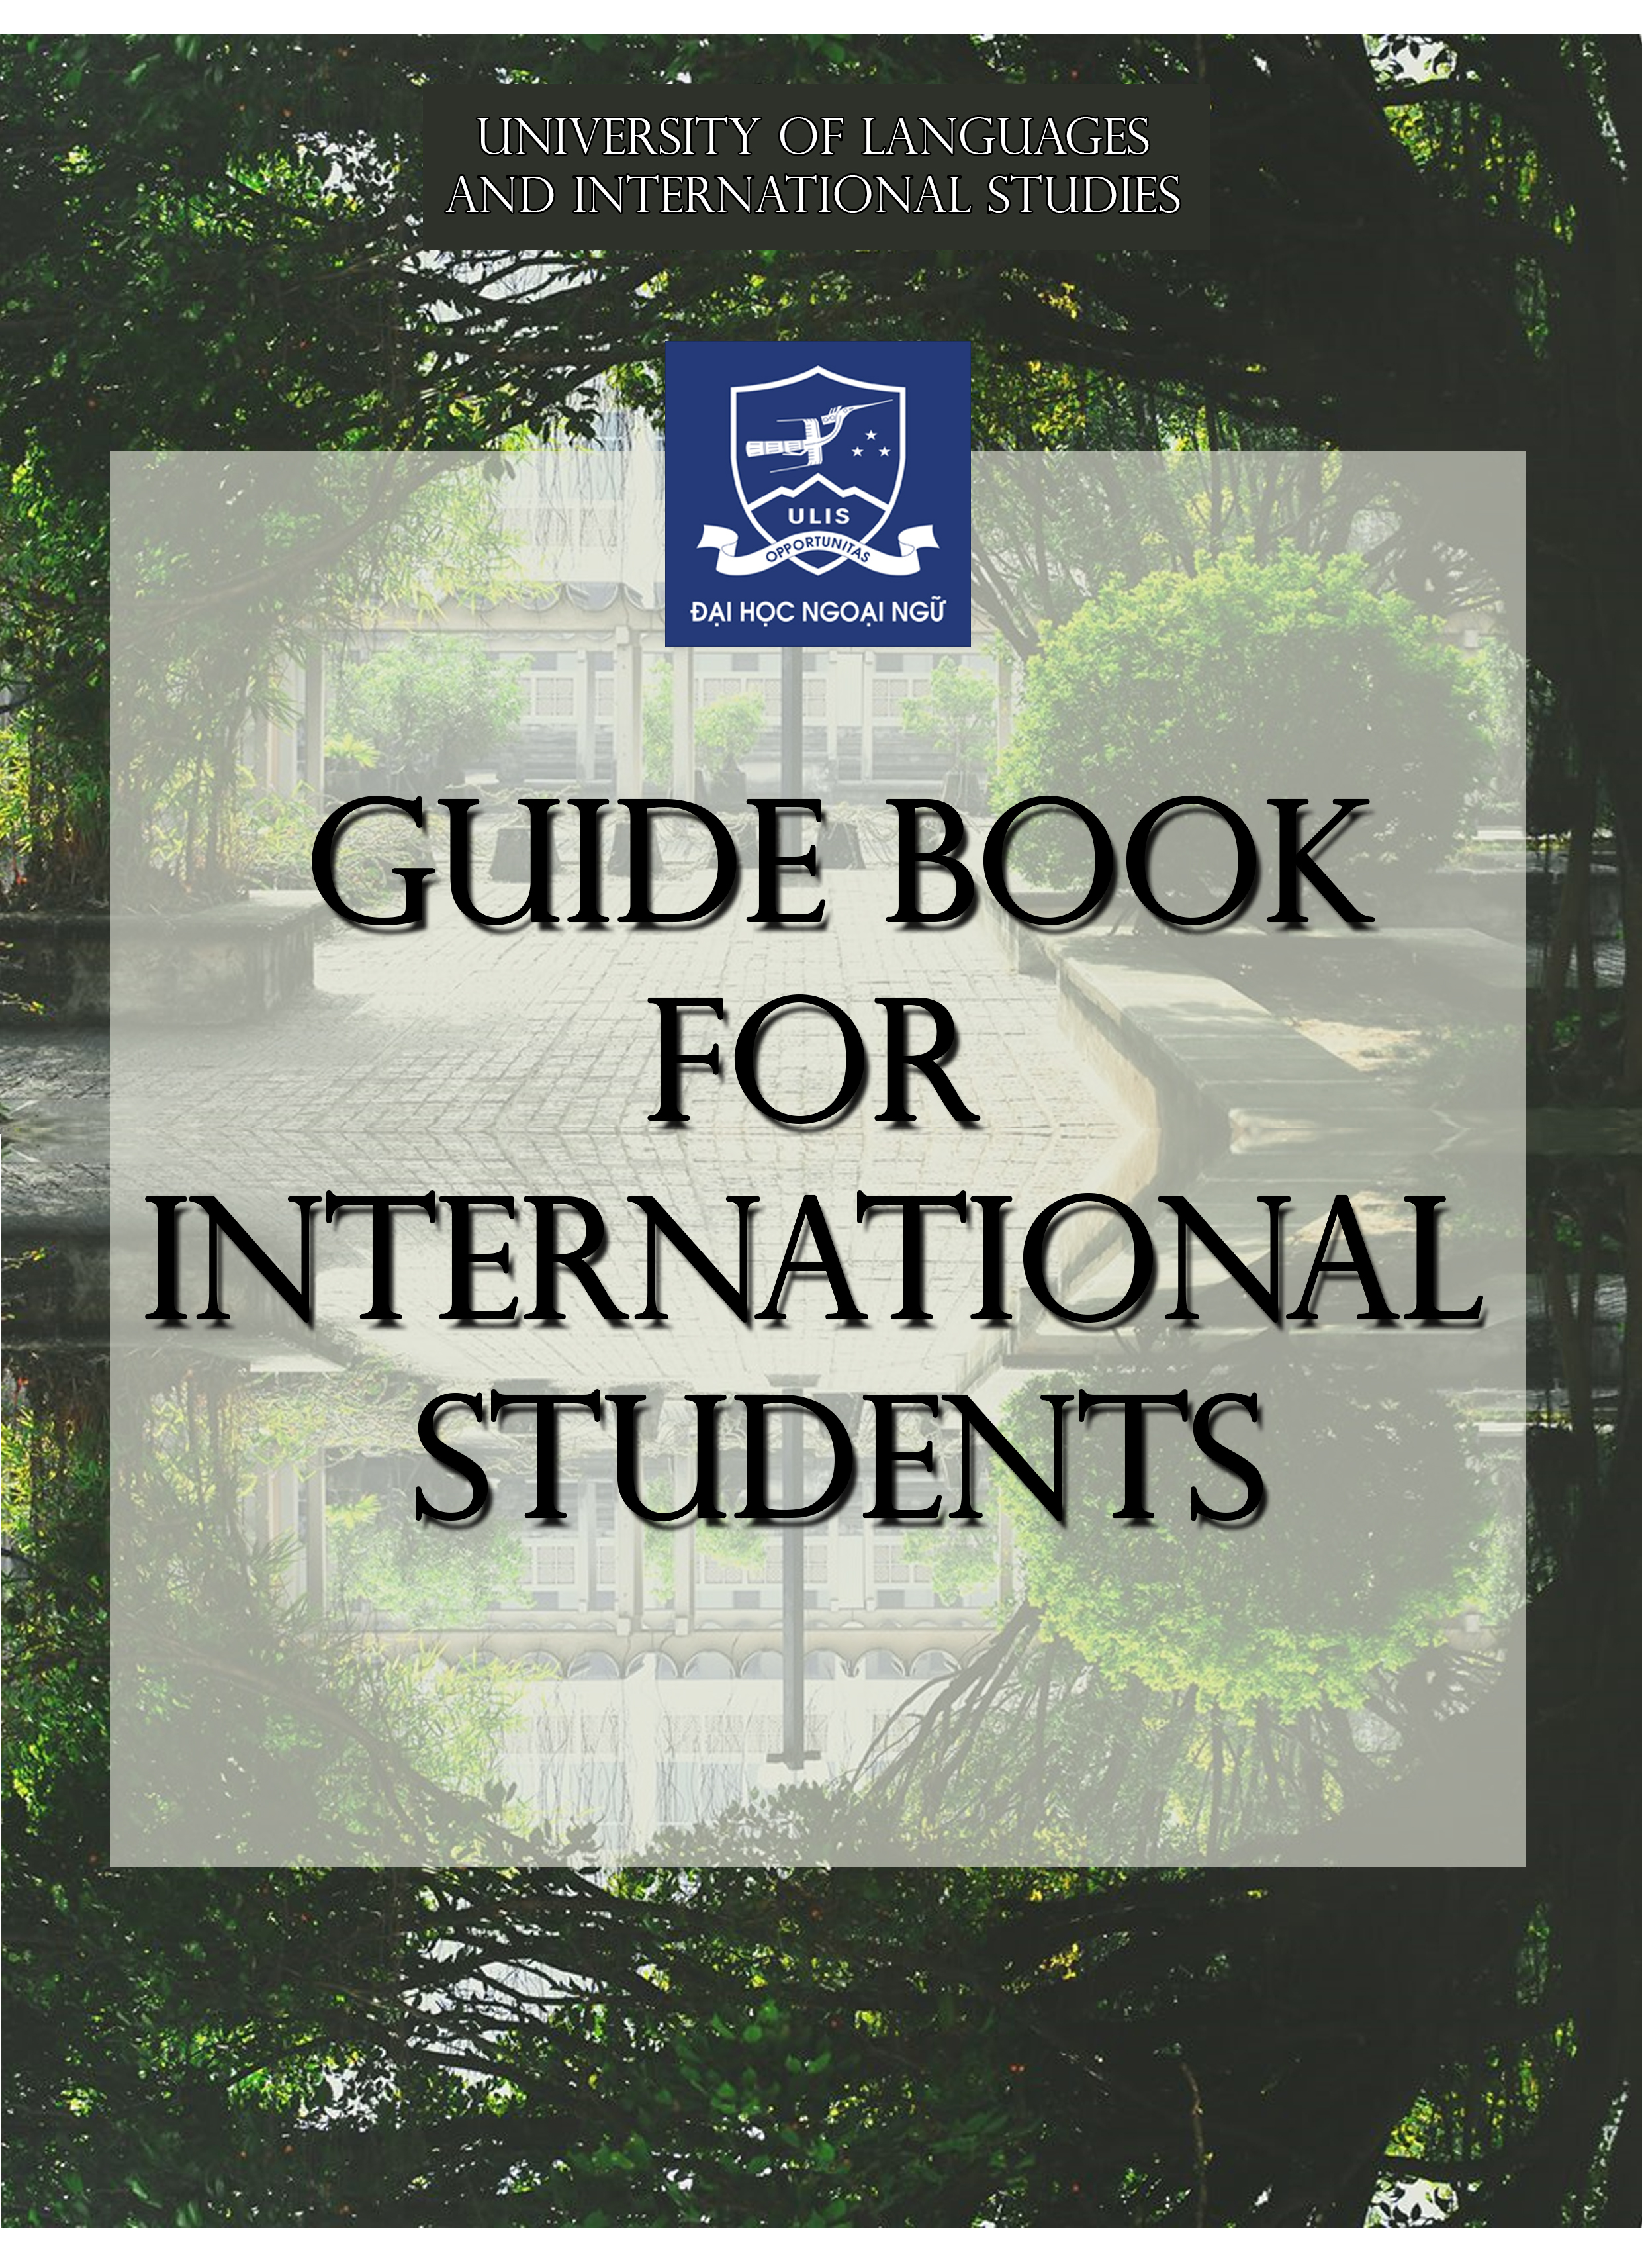 First time in Vietnam? Don't know your way around the campus or how to navigate the confusing academic procedures in a foreign environment? Then this guidebook shall help you from the steps of enrolling into courses to what meal choices available around on and around campus. Consider this book to be your constant companion when you study in ULIS-VNU